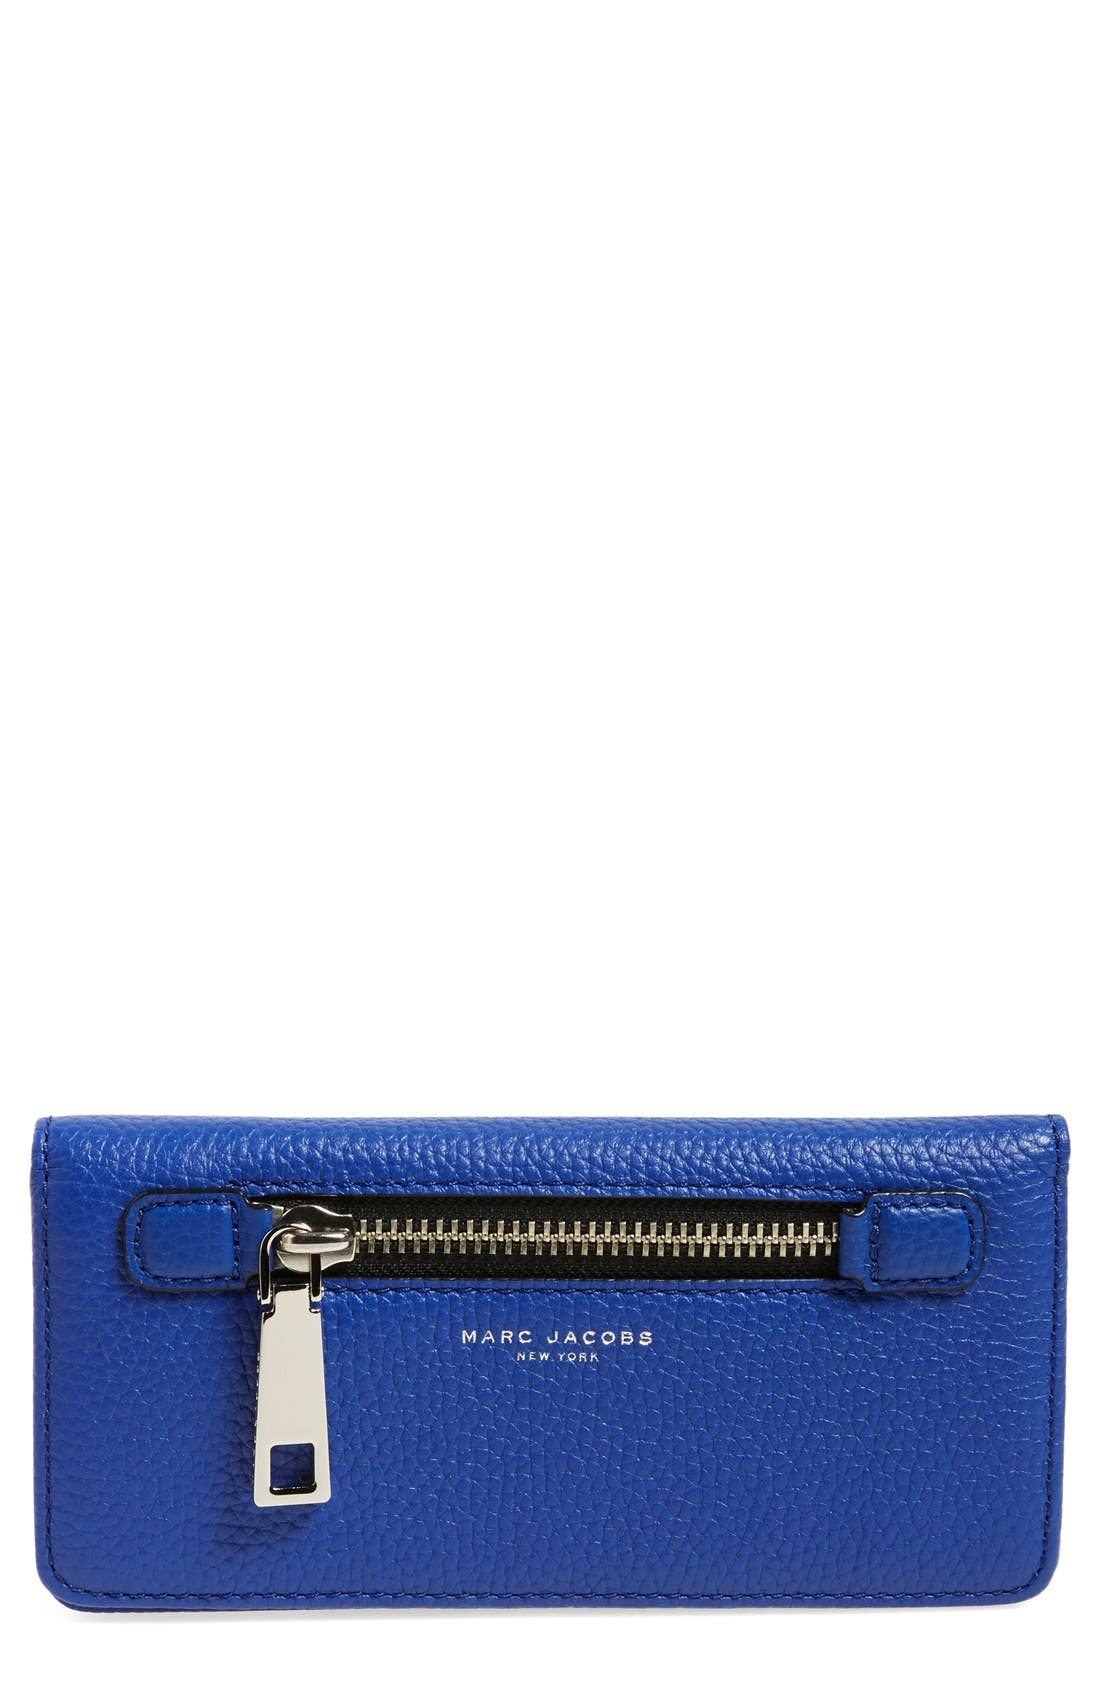 Main Image - MARC JACOBS 'Gotham' Leather Wallet